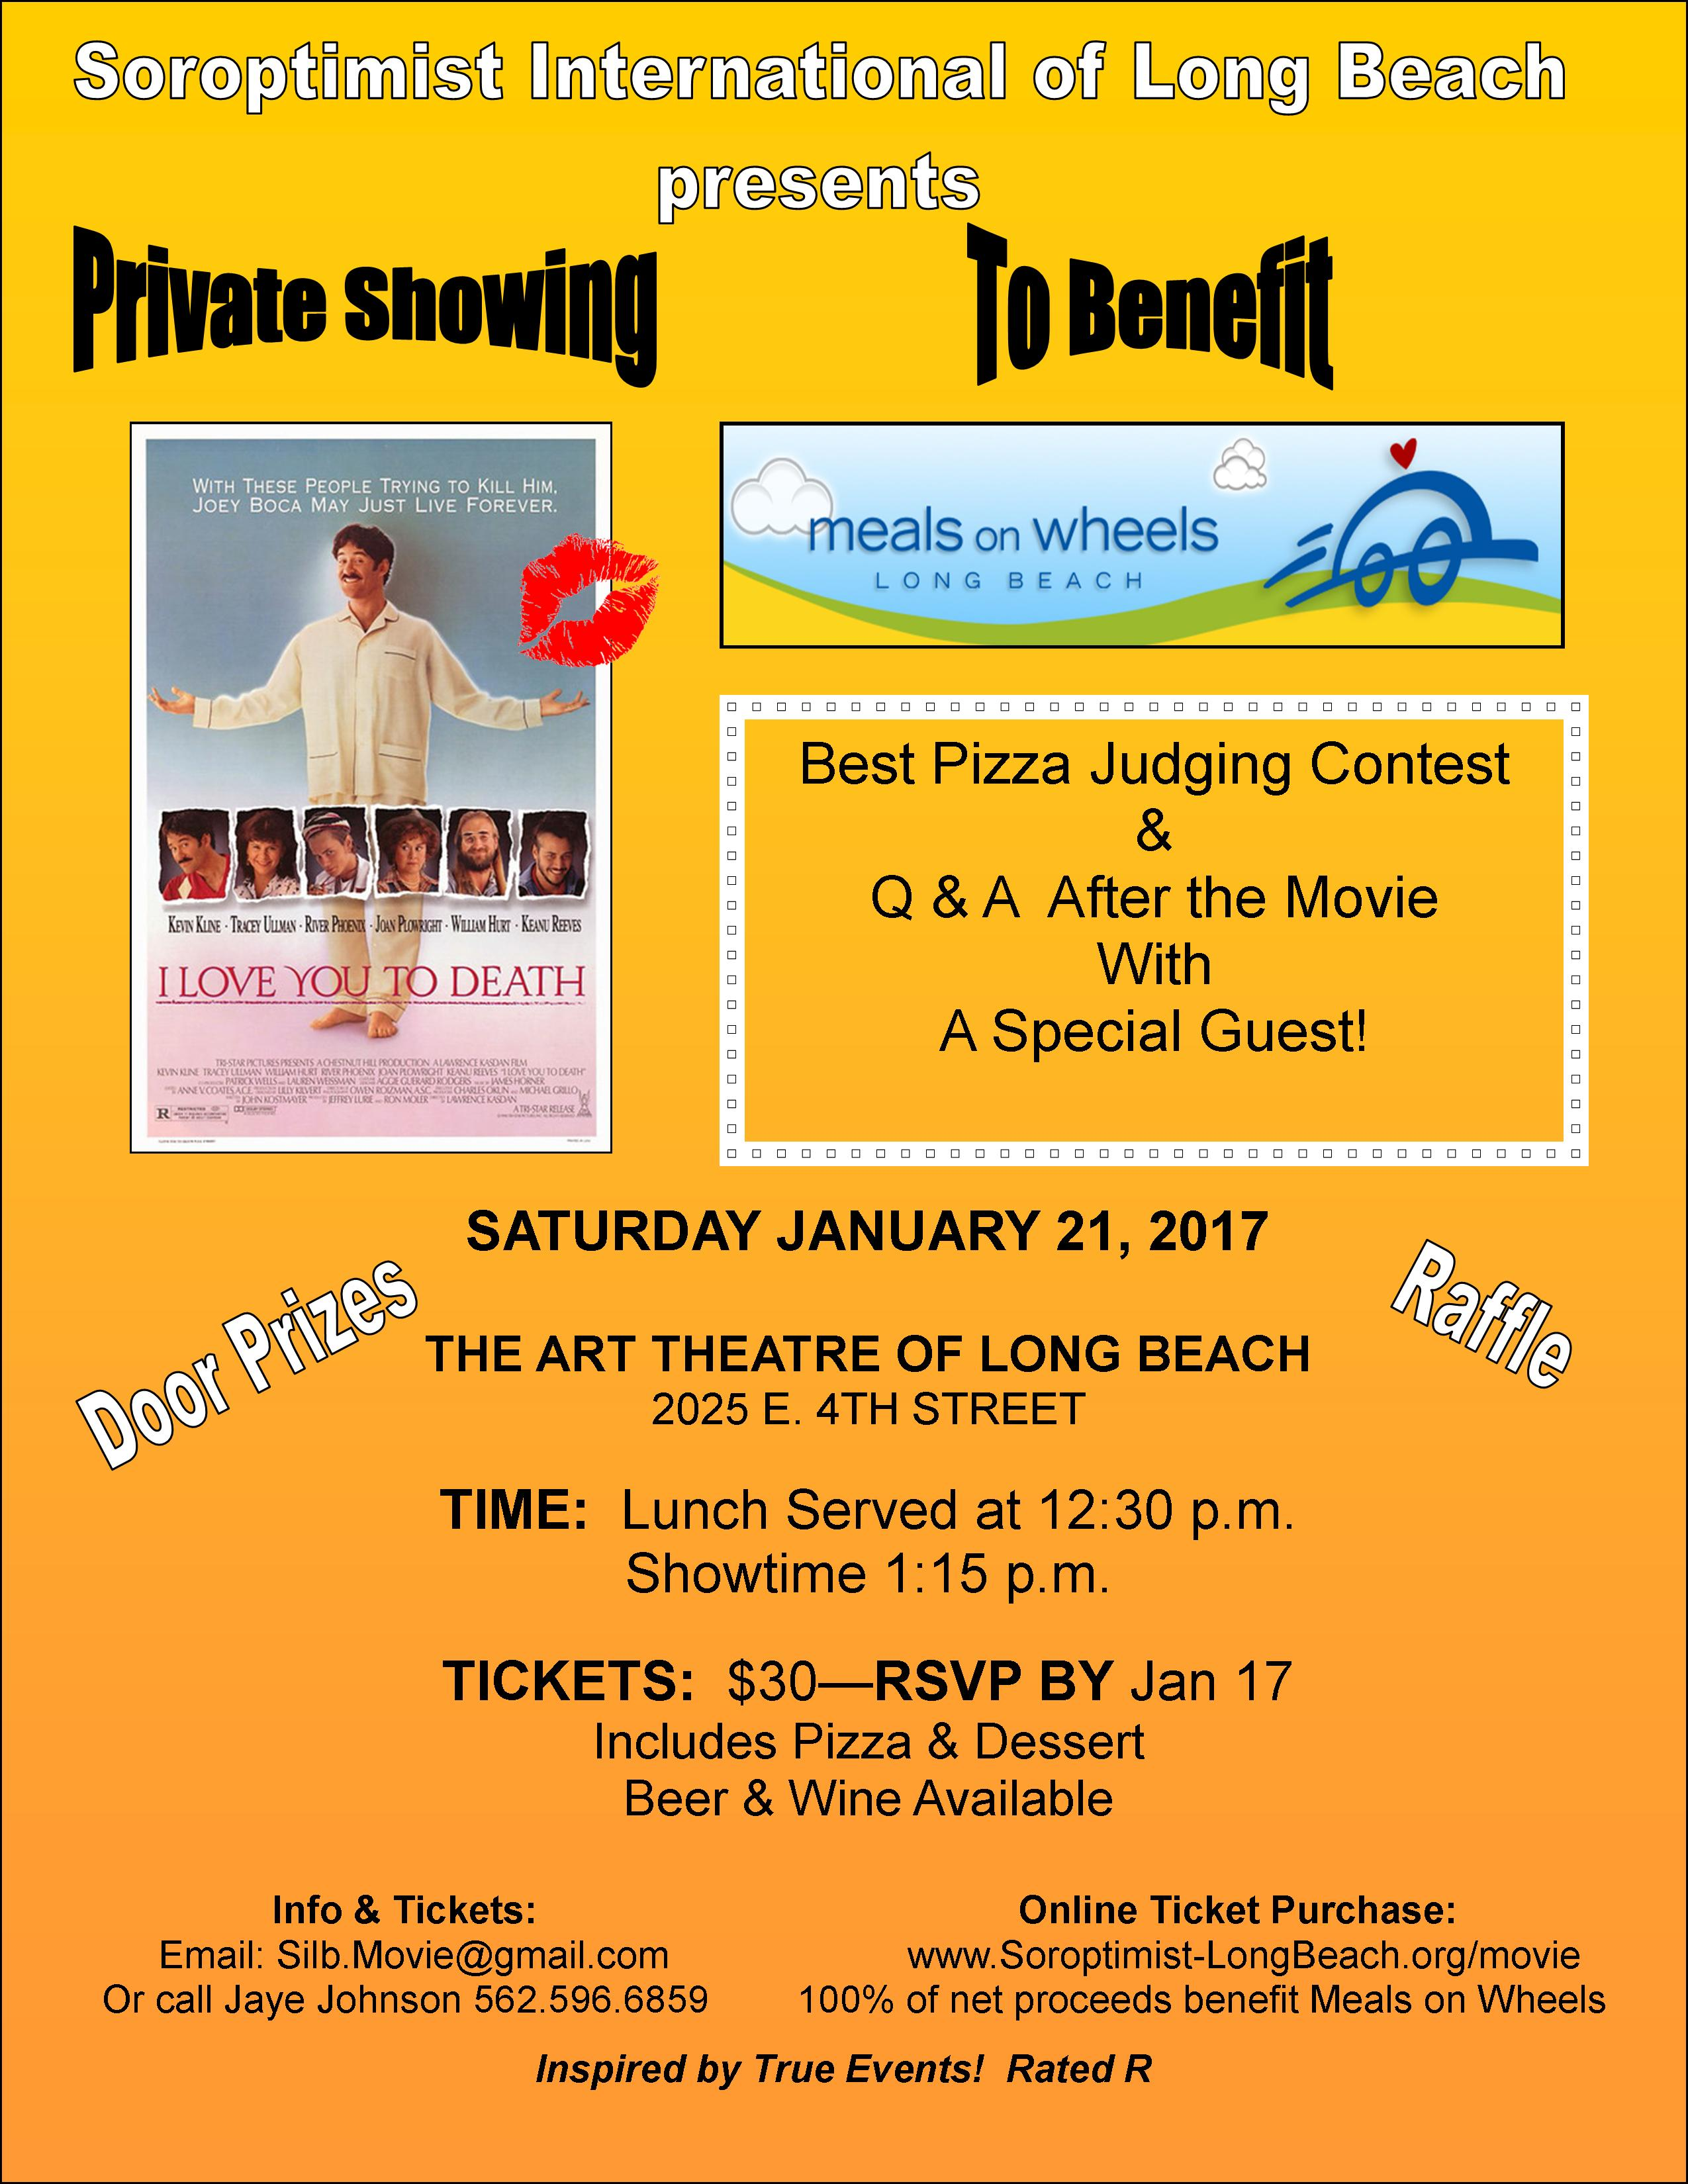 Soroptimist Intl of Long Beach presents a Private Showing of %22I Love You to Death%22 starring Kevin Kline and Tracey Ullman